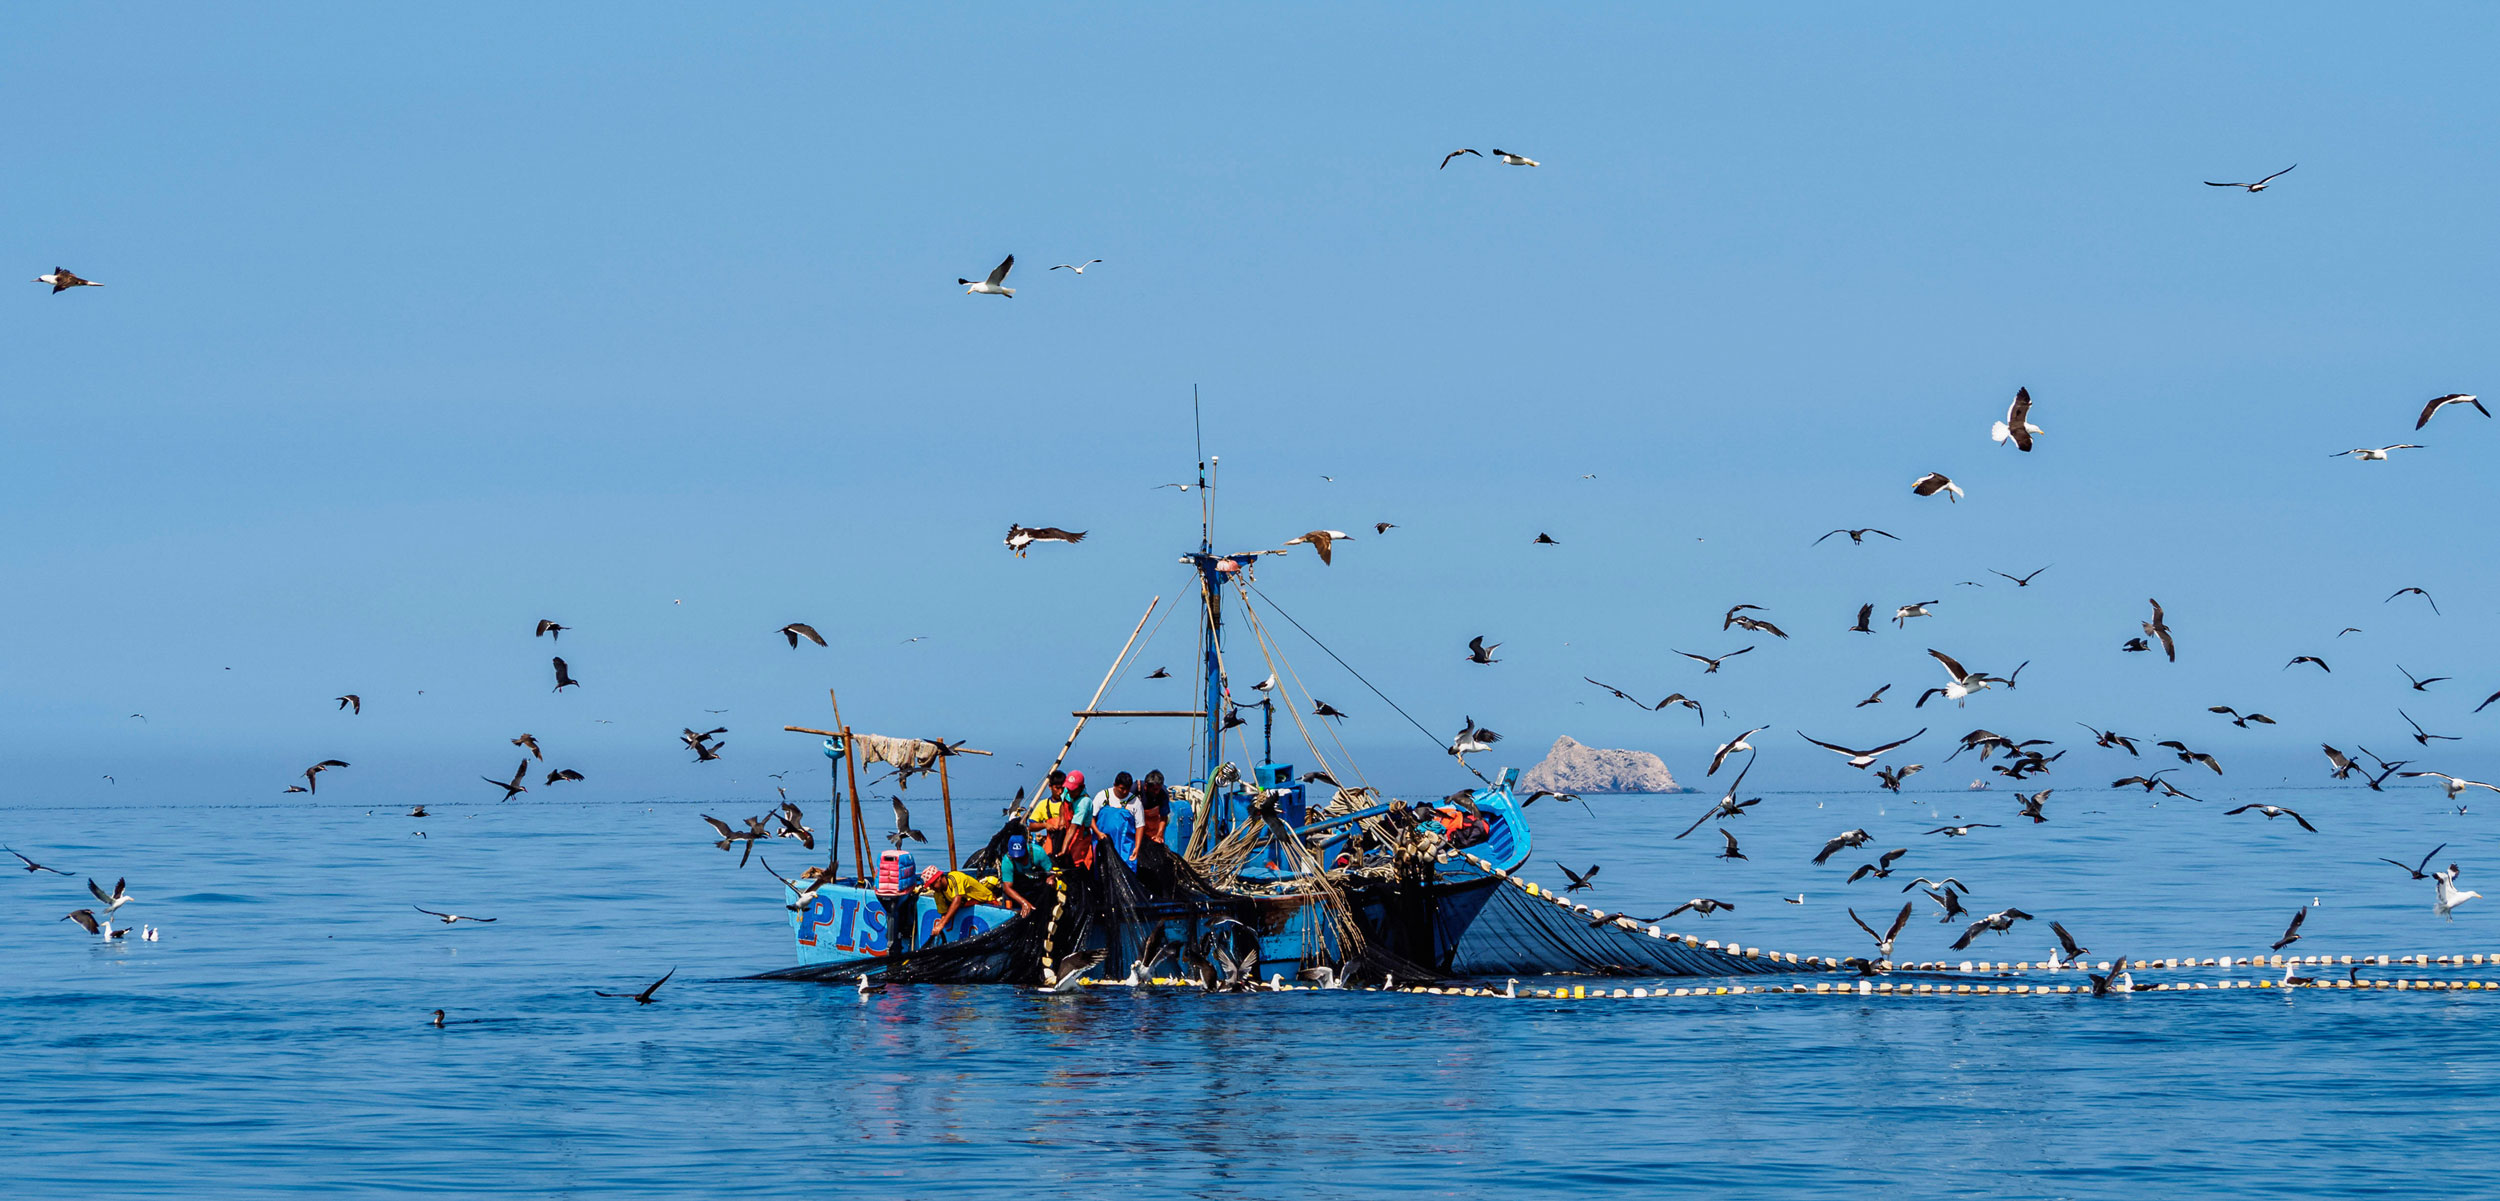 Boat in ocean with fisherman onboard pulling up a net surrounded by birds.